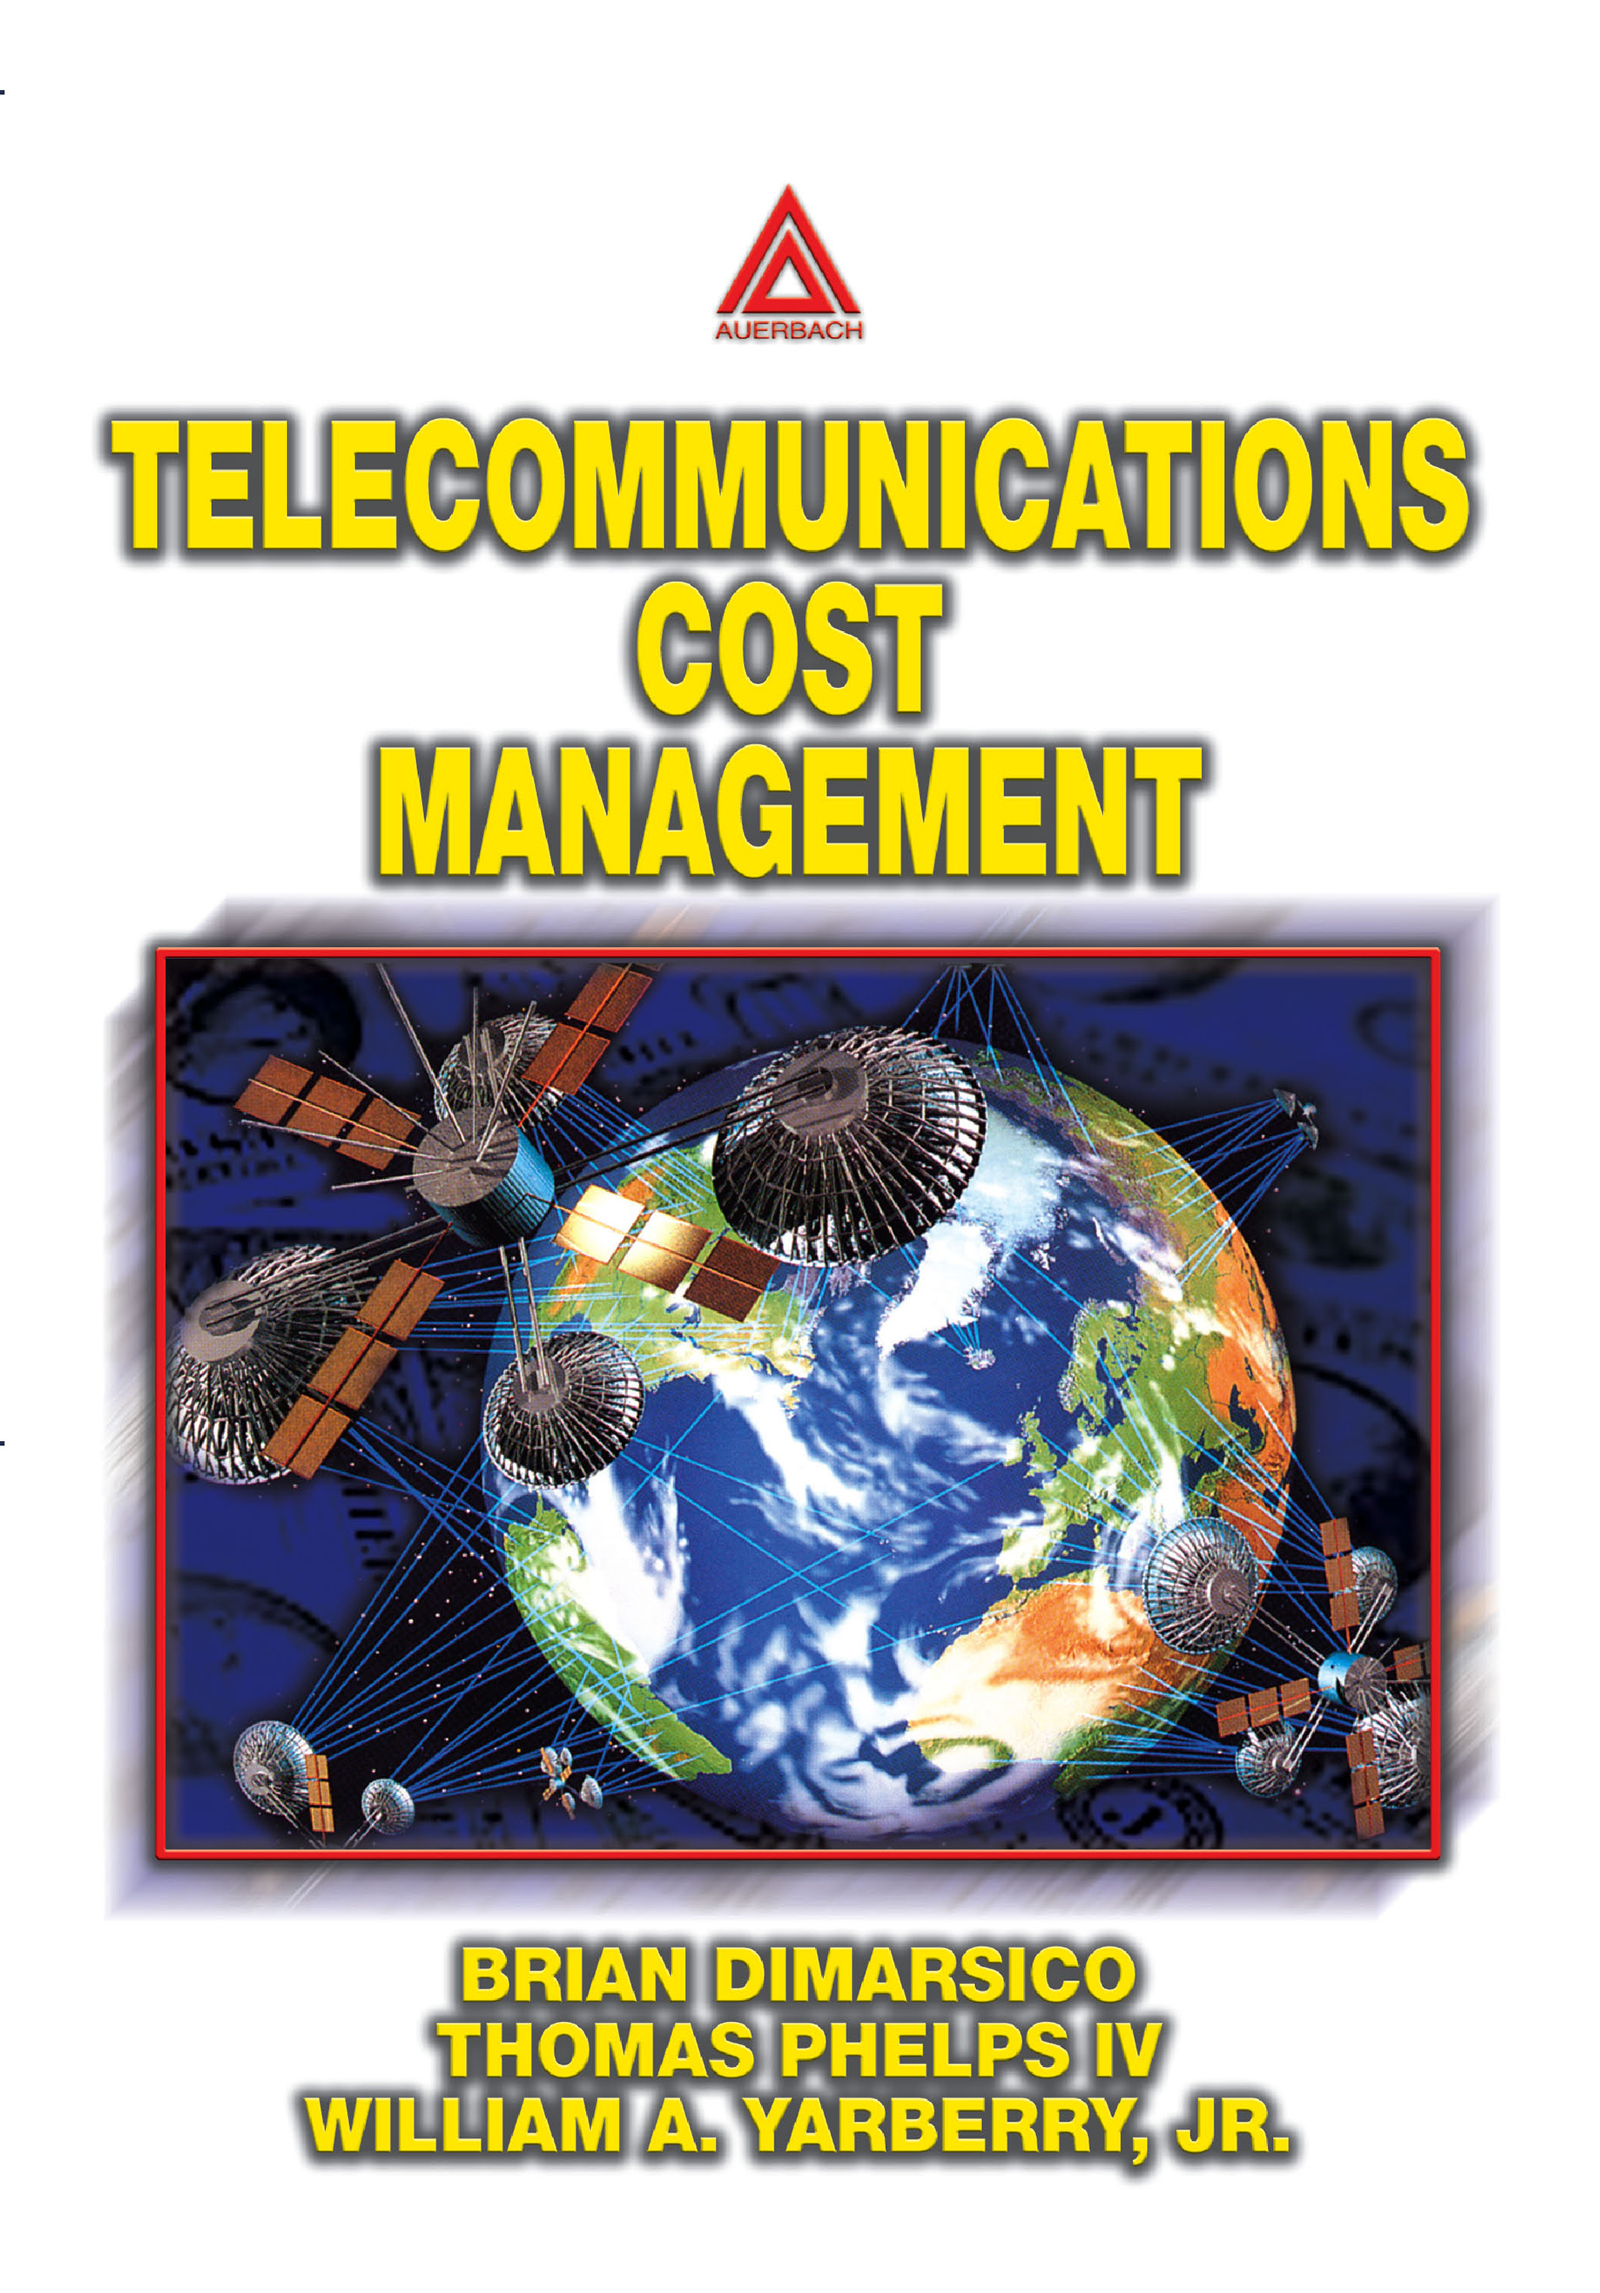 Download Ebook Telecommunications Cost Management by Yarberry, Jr., William A. Pdf